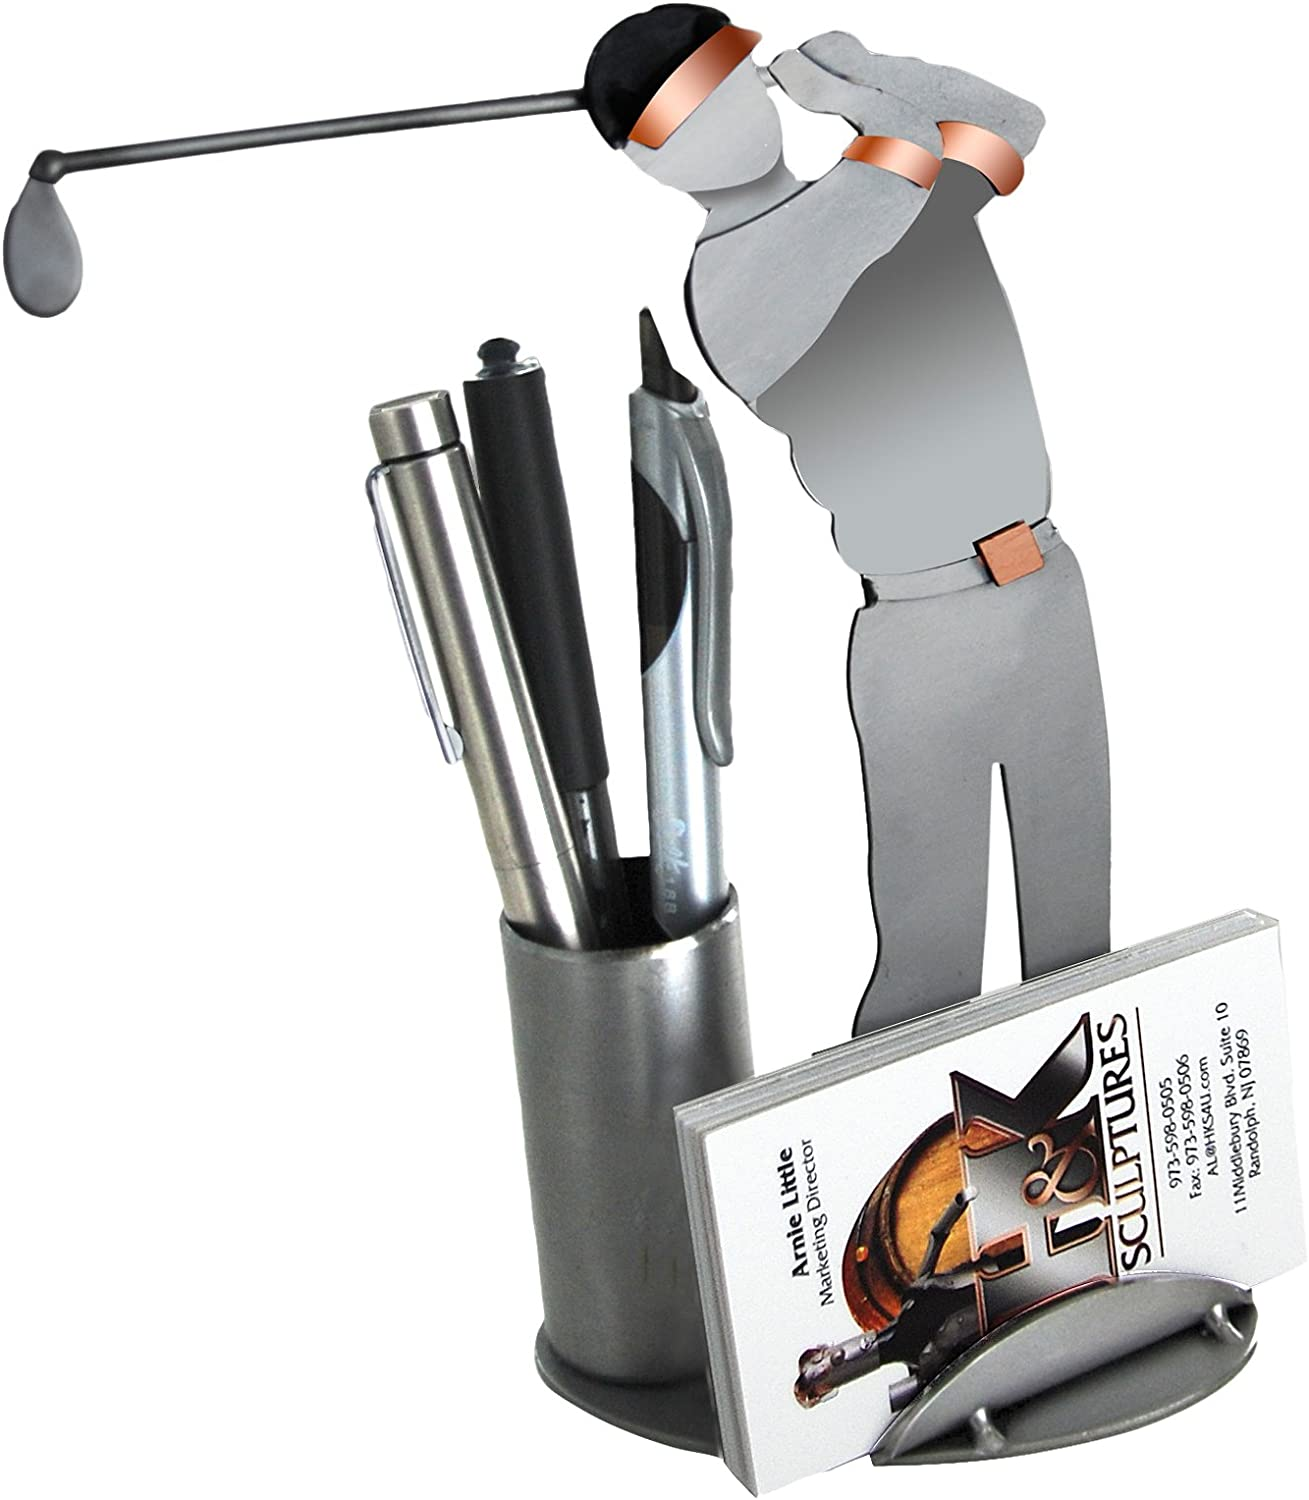 H K SCULPTURES 6686BC Golf New sales Driving Business Max 66% OFF Holder Card